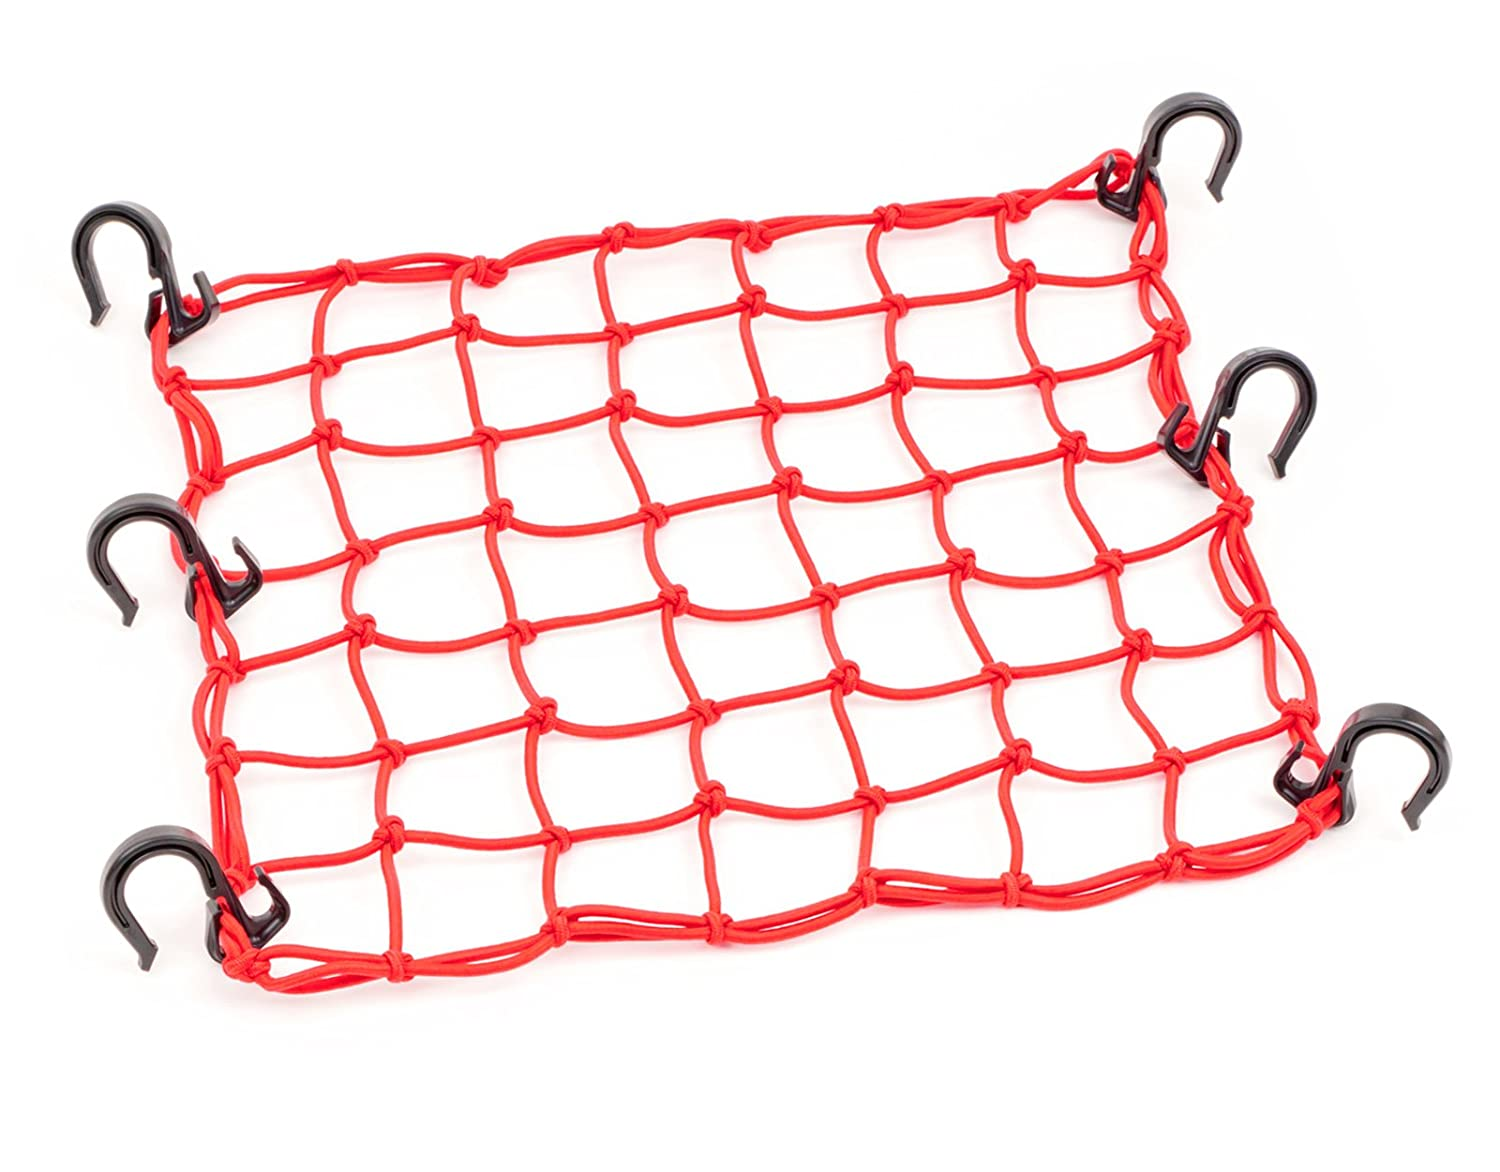 POWERTYE 5015115'x15' PowerTye Mfg Cargo Net featuring 6 Adjustable Hooks & Tight 2'x2' Mesh, Red